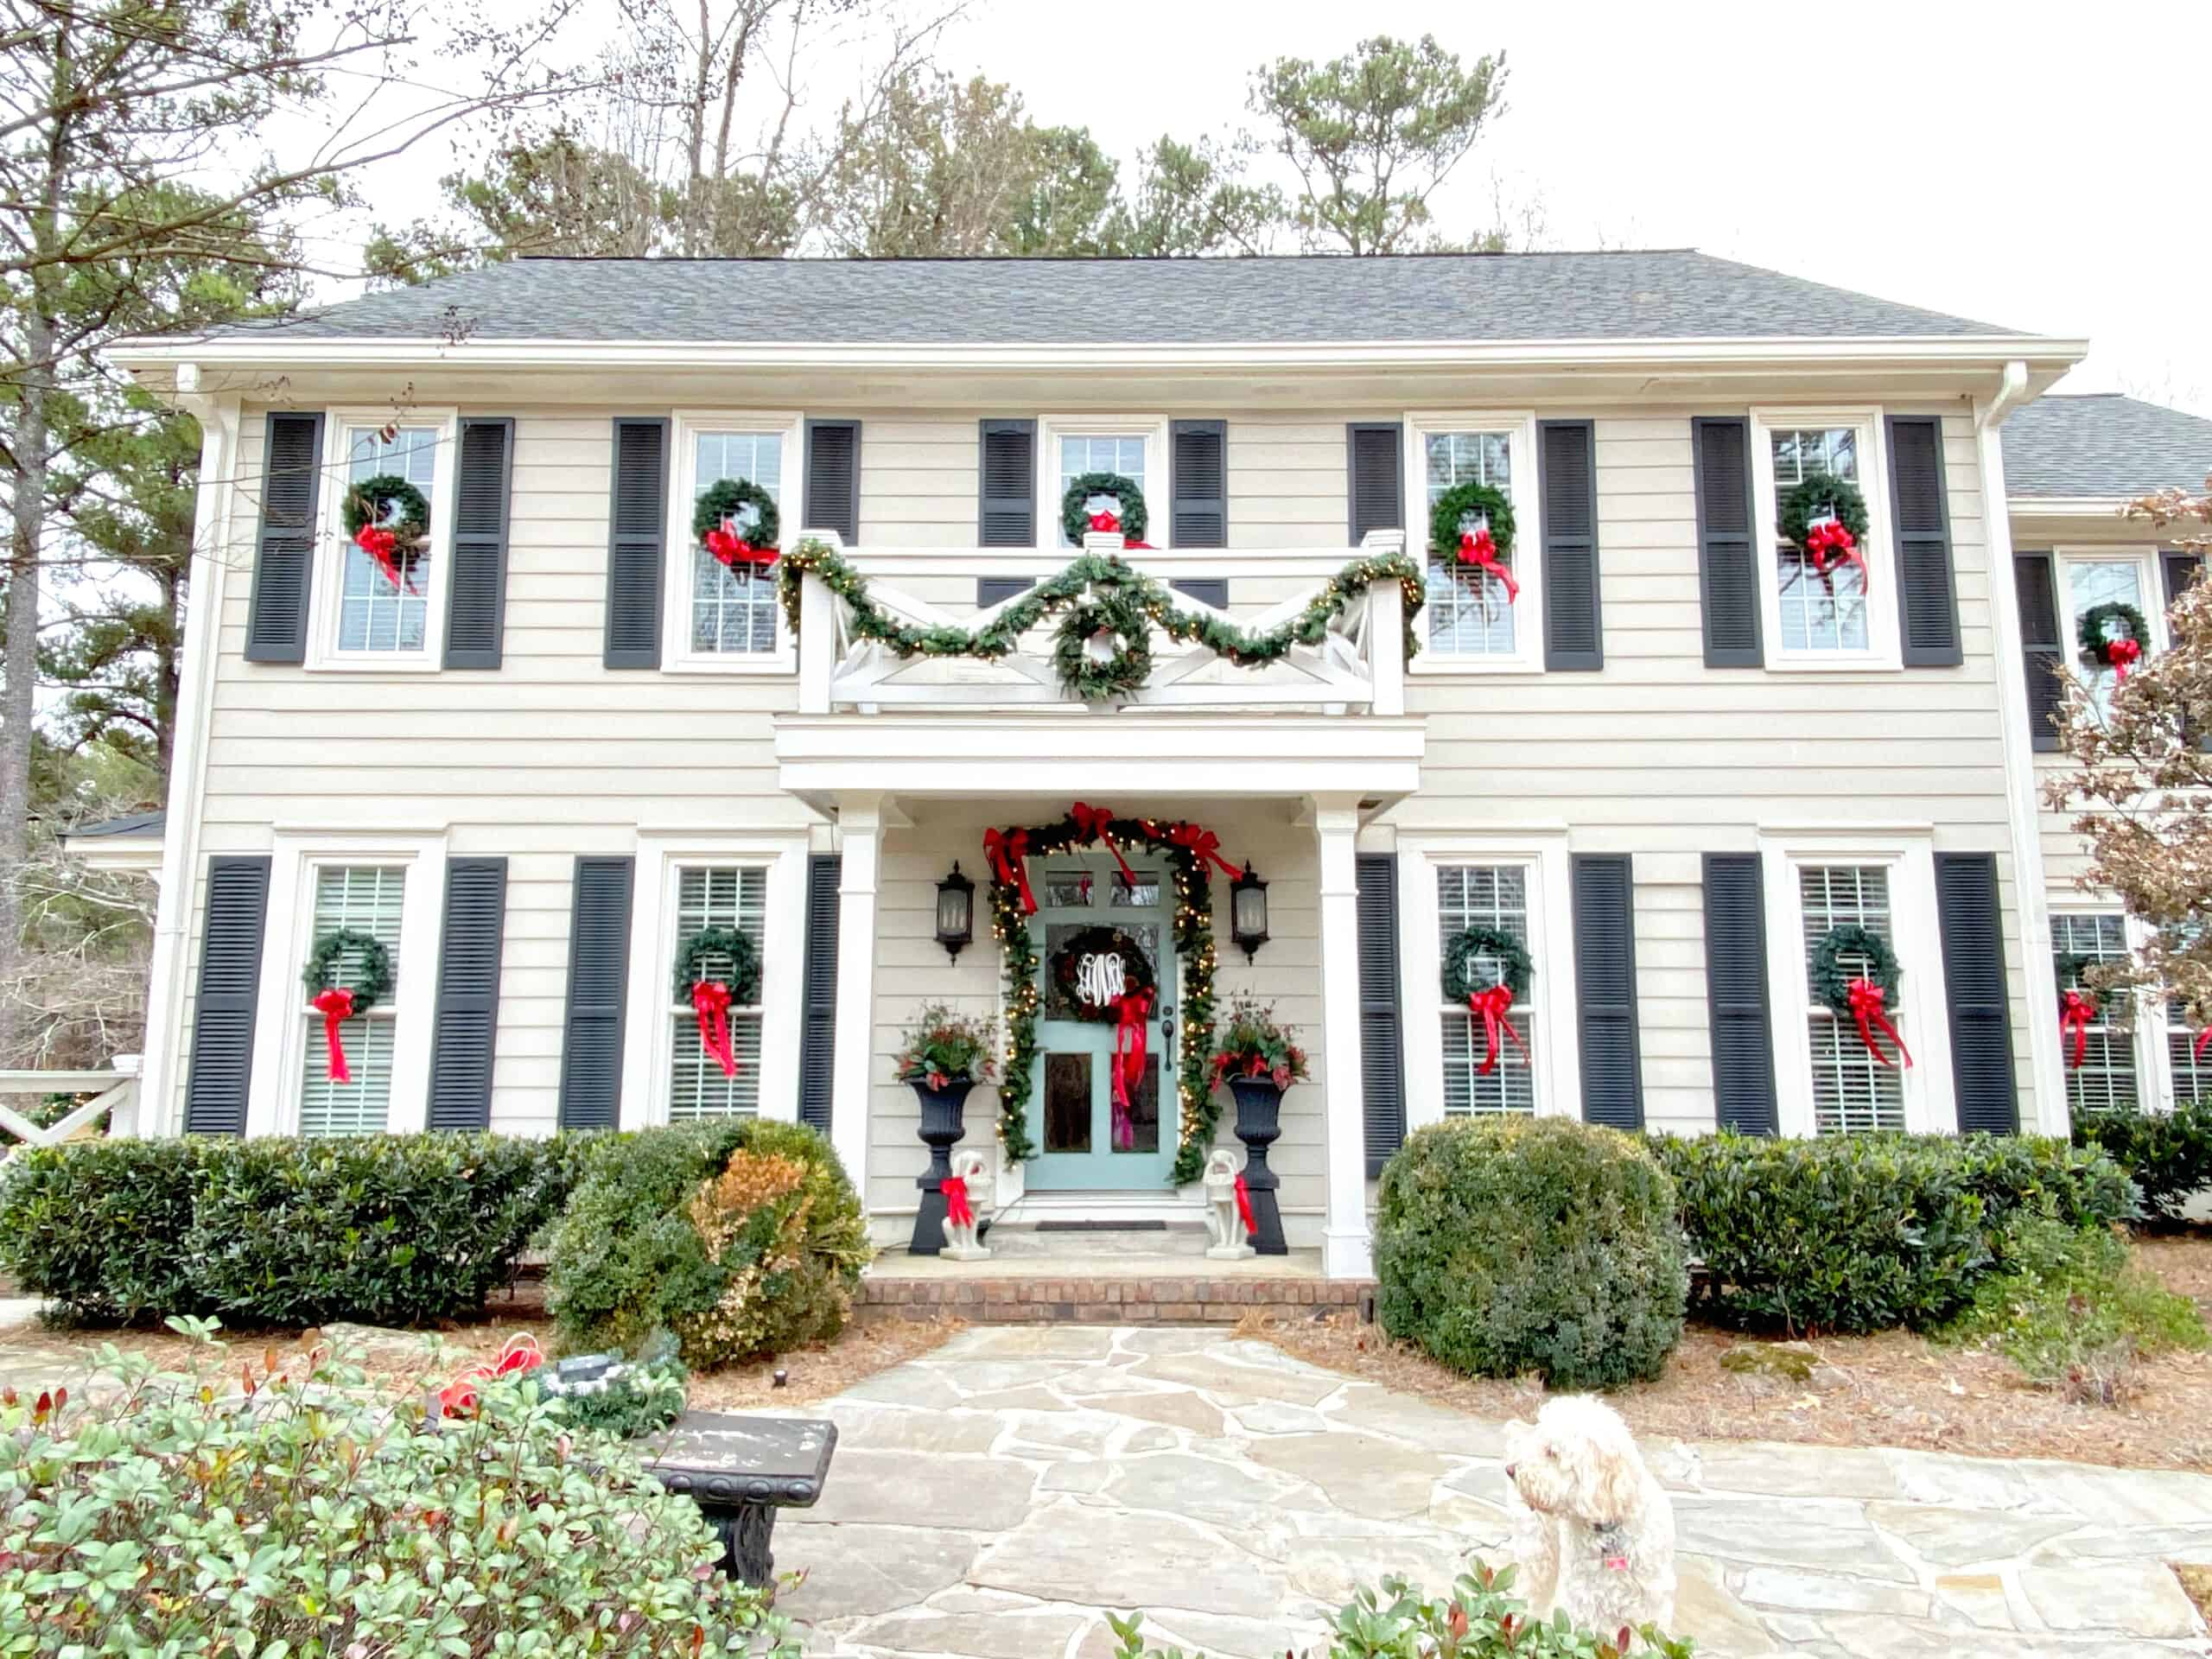 Holiday Home Tour 2019 Exterior Foyer Dixie Delights